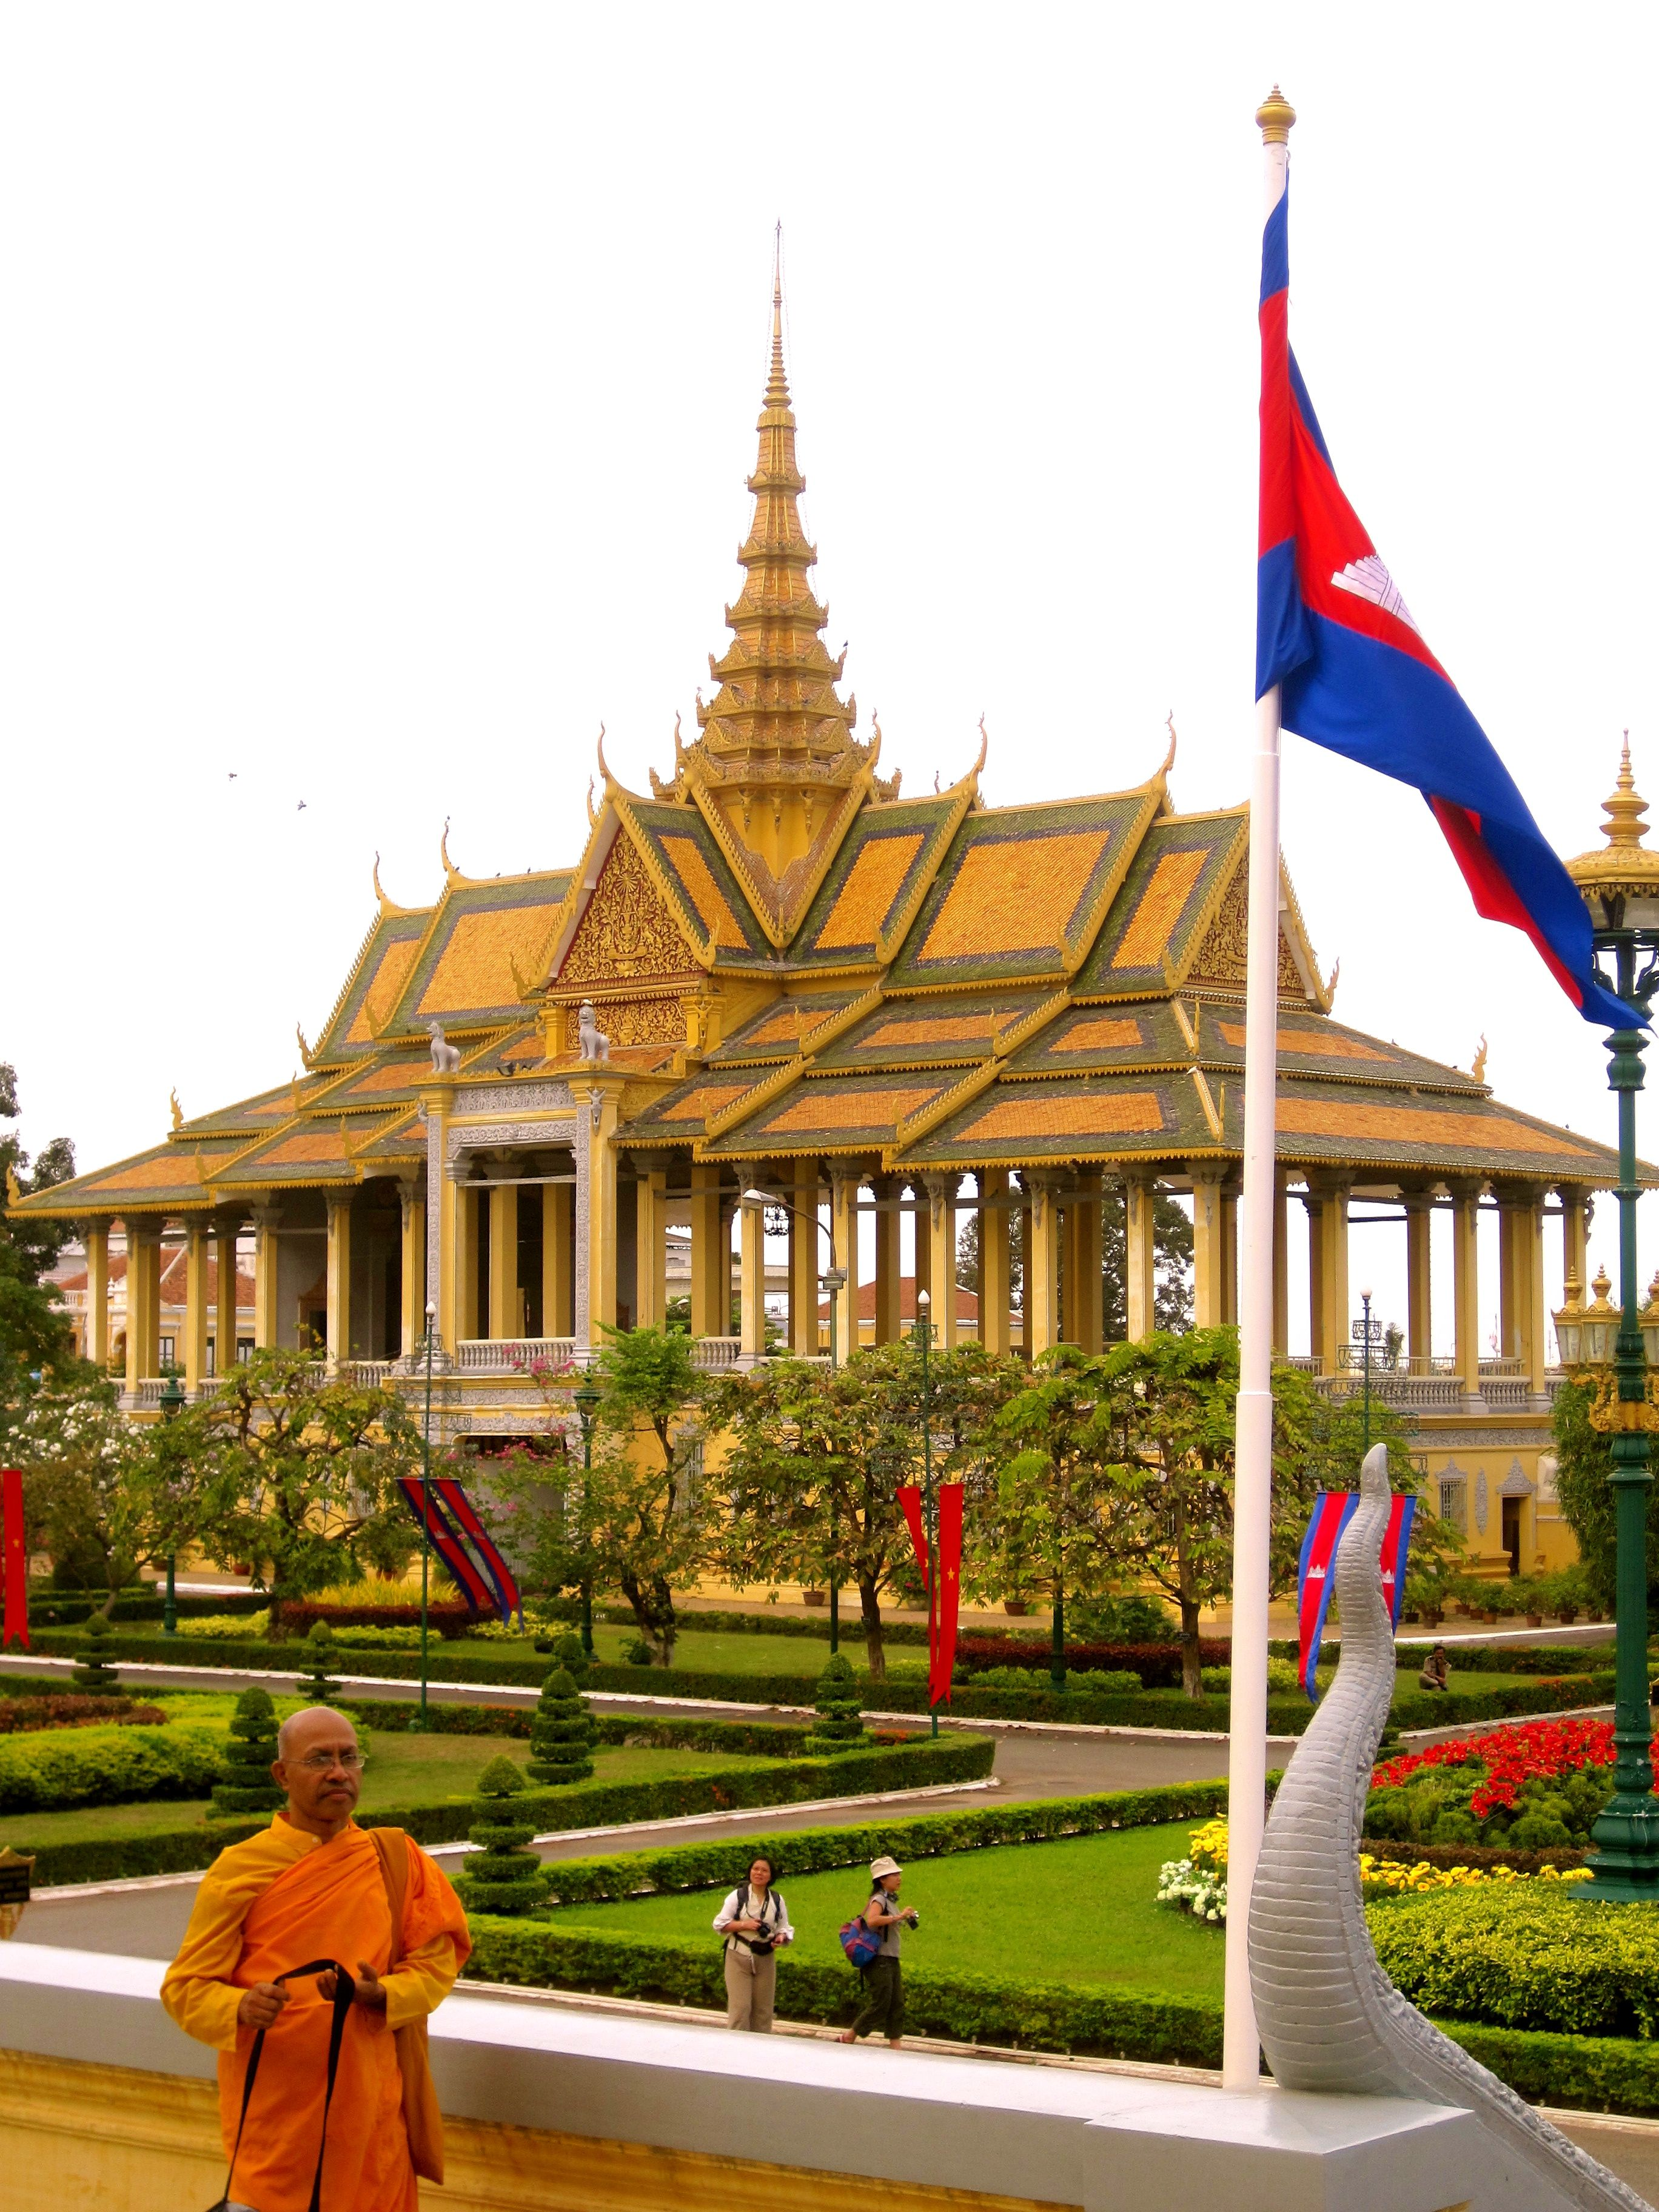 Cambodia What to do, What to see, What to eat? Phnom Penh!